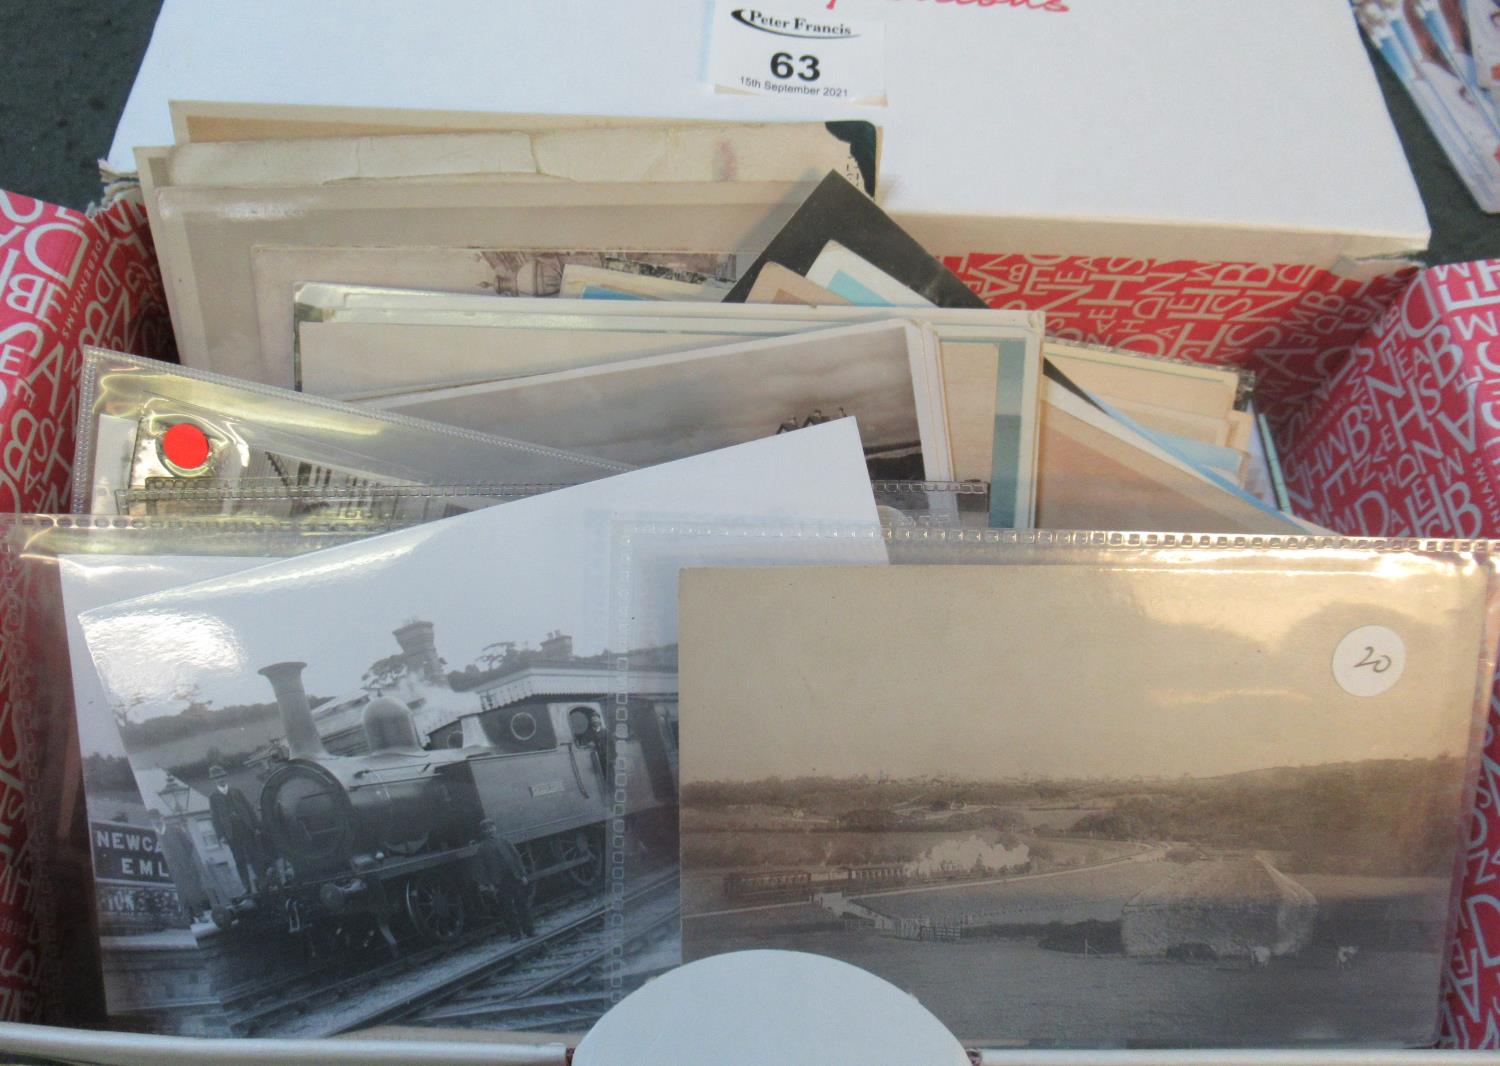 Postcards selection in shoe box mostly topographical and range of Welsh Costume cards. (B.P. 21% +